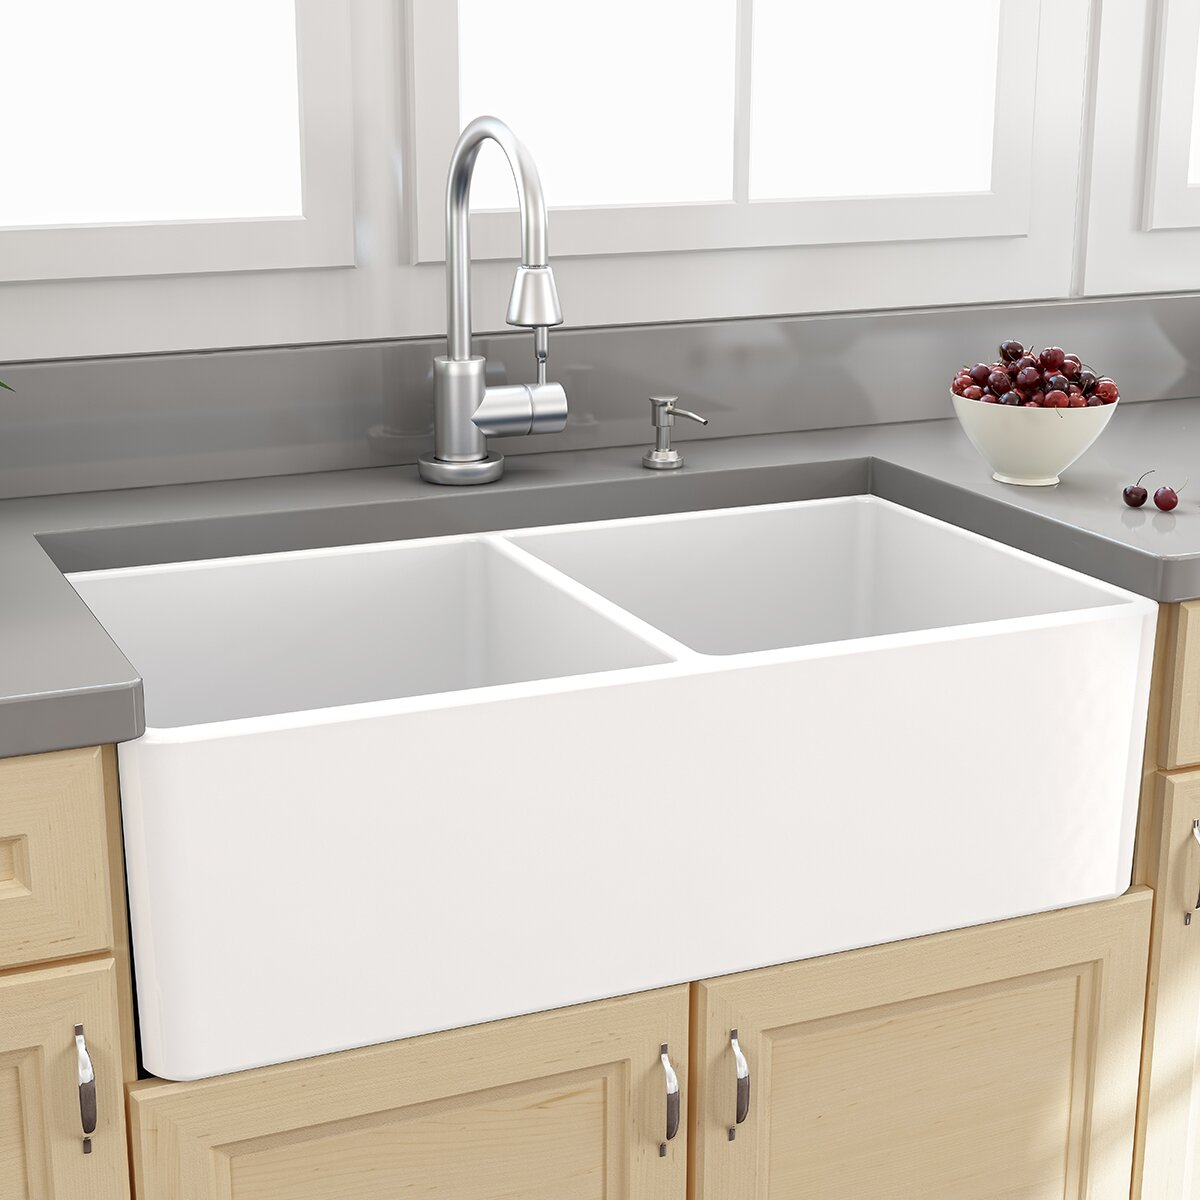 Farmhouse Double Bowl Sink : Nantucket Sinks Farmhouse 33